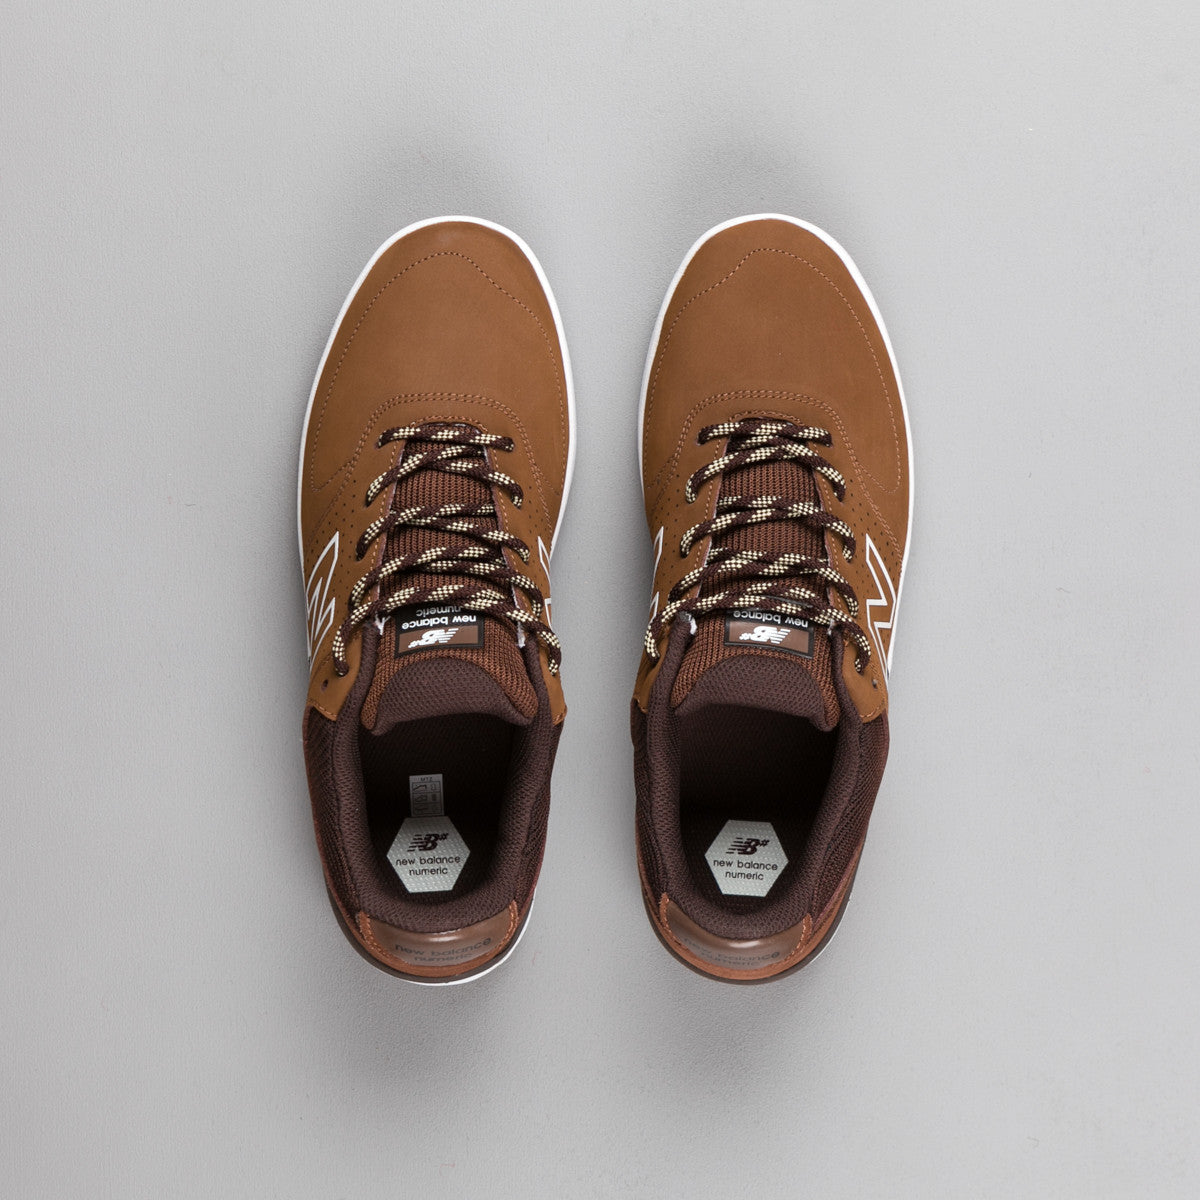 New Balance Numeric PJ Stratford 533 Shoes - Brown